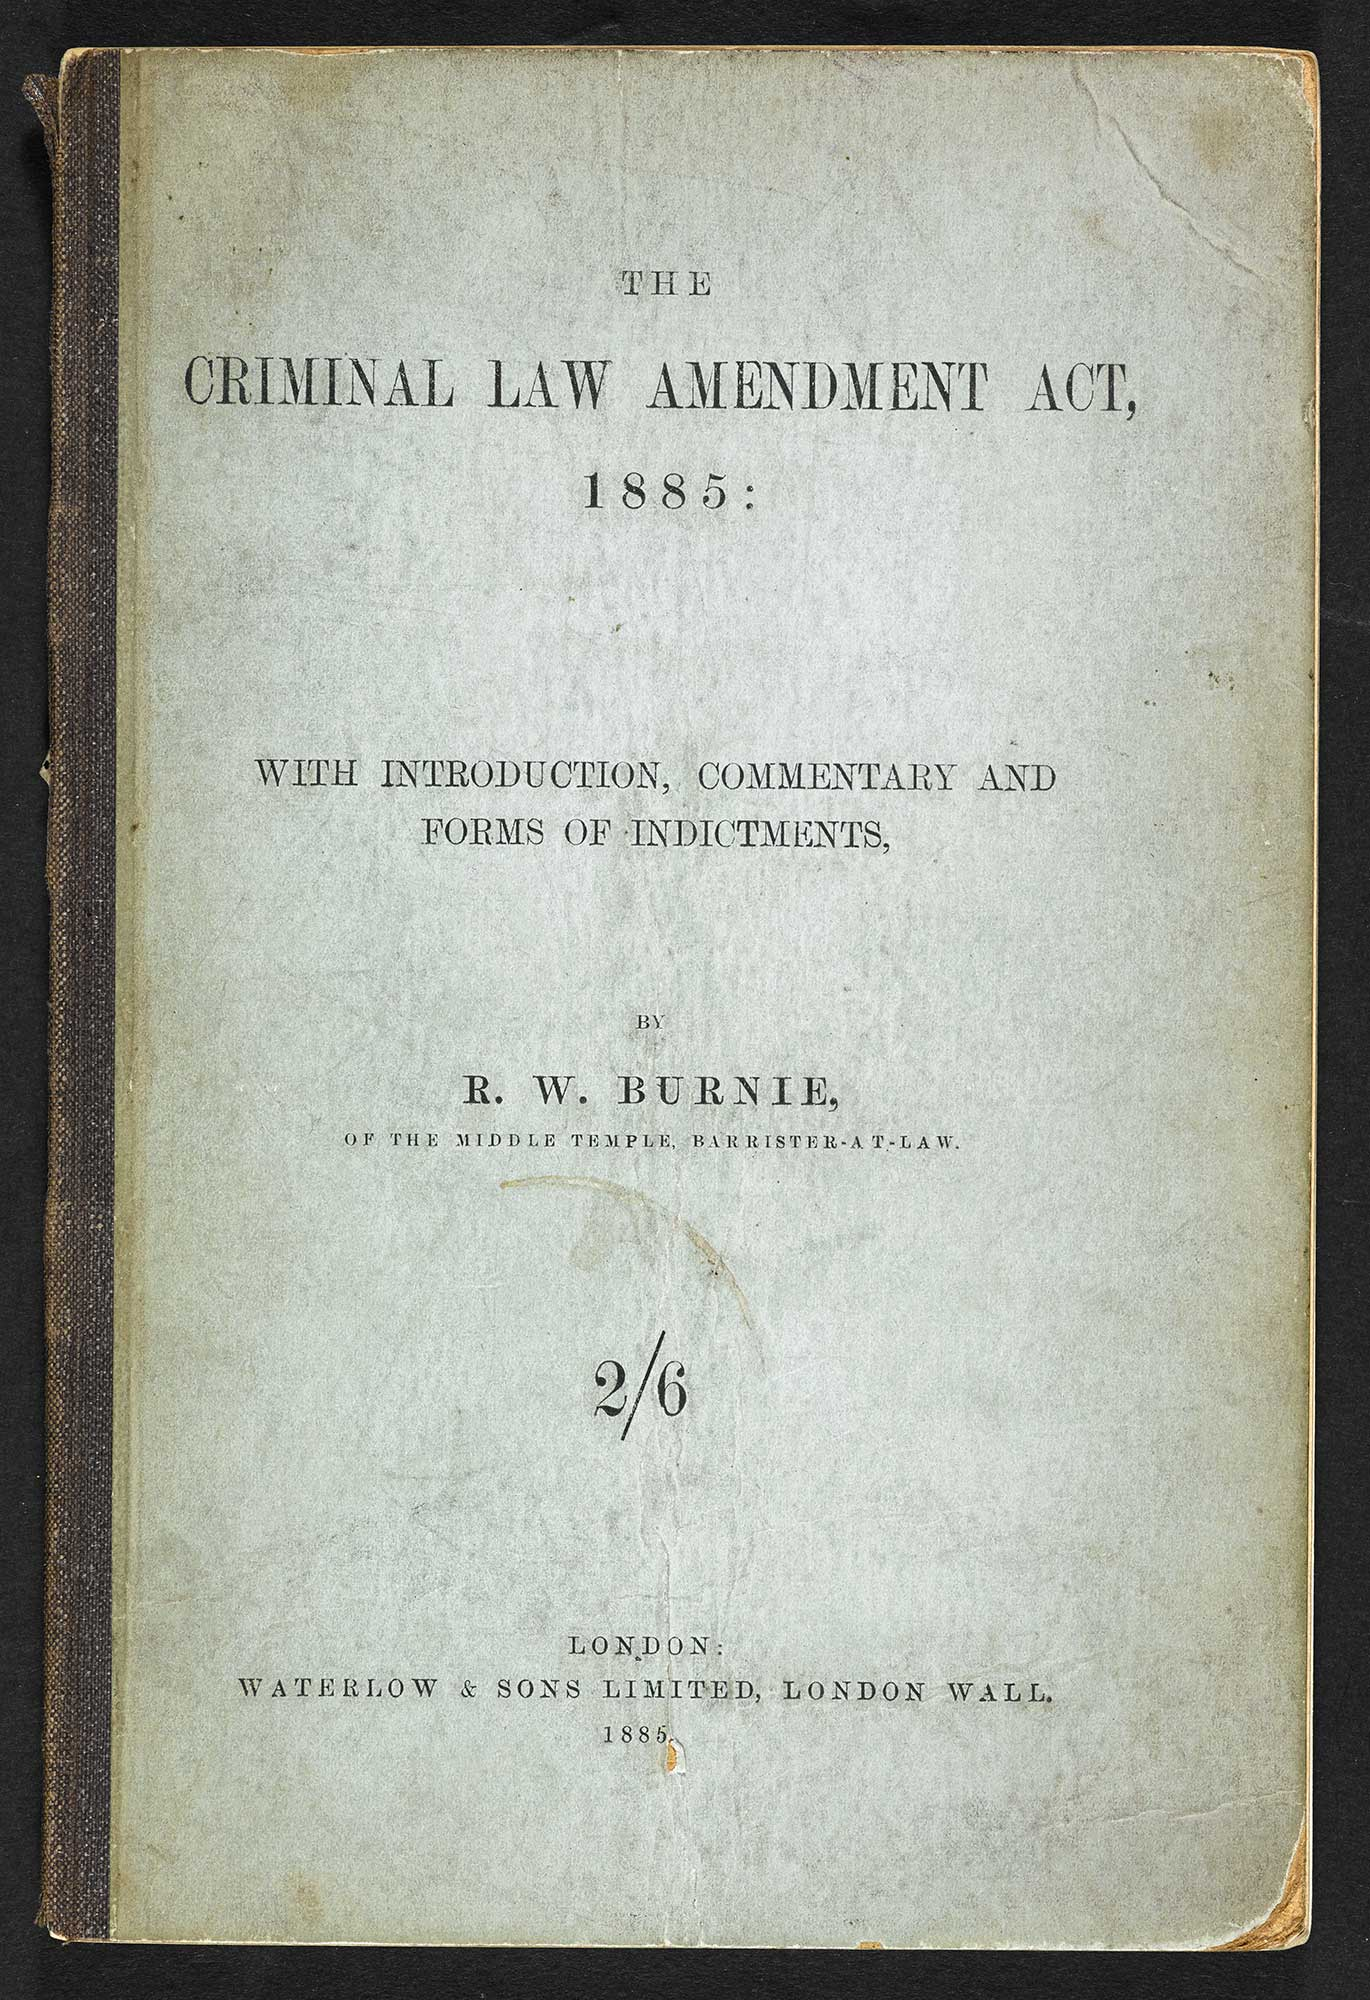 The Criminal Law Amendment Act, 1885 - The British Library